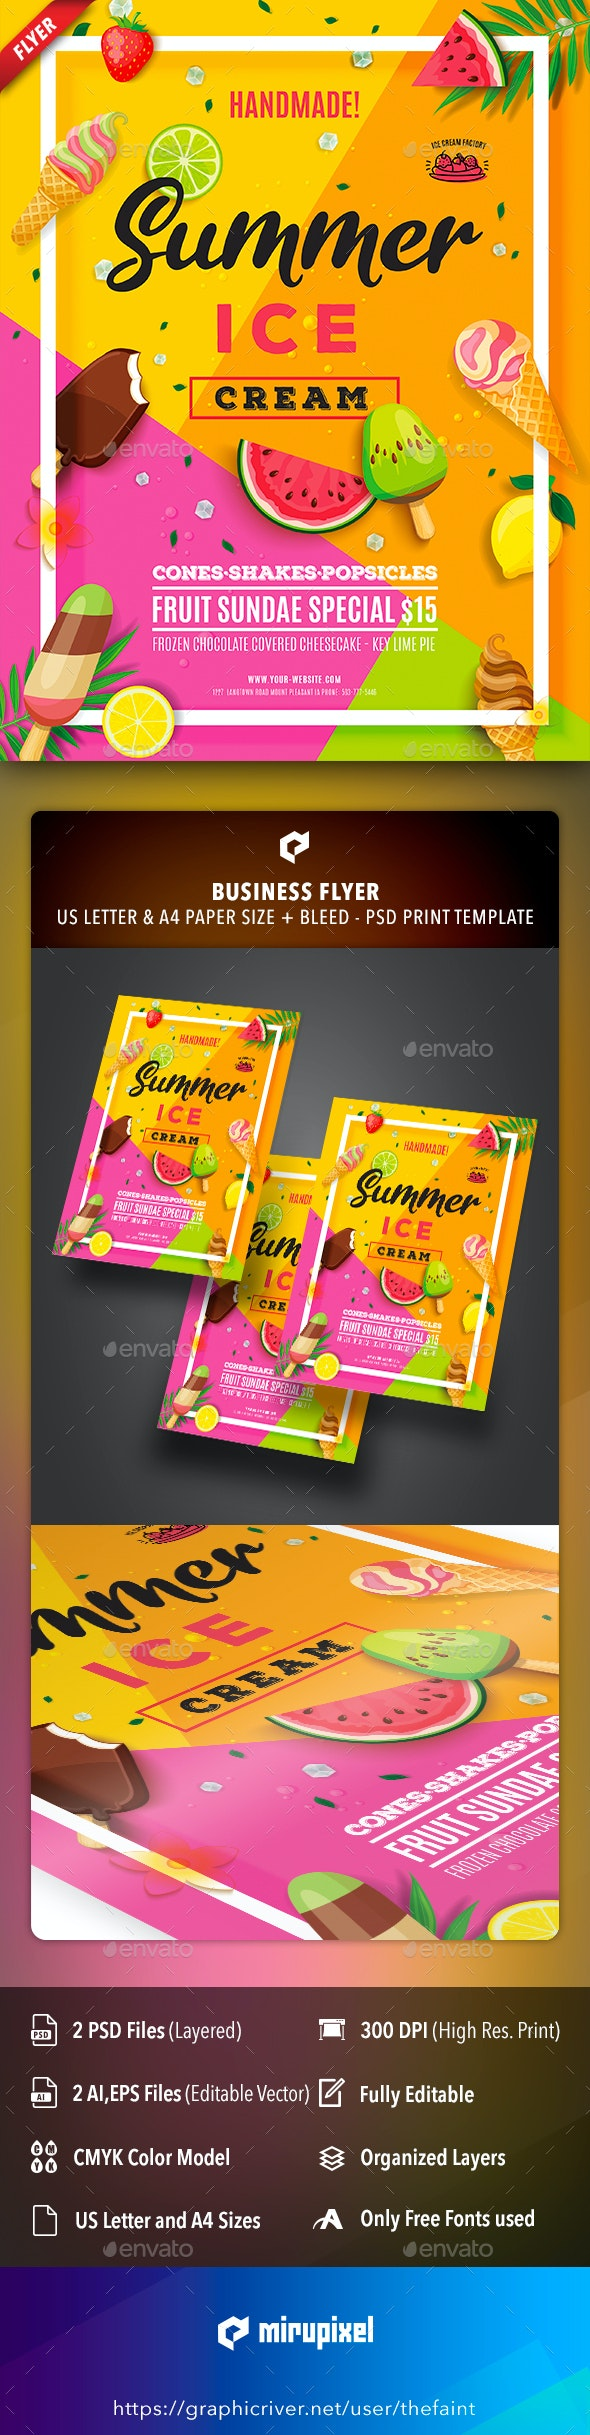 Summer Ice Cream Business Flyer - Commerce Flyers